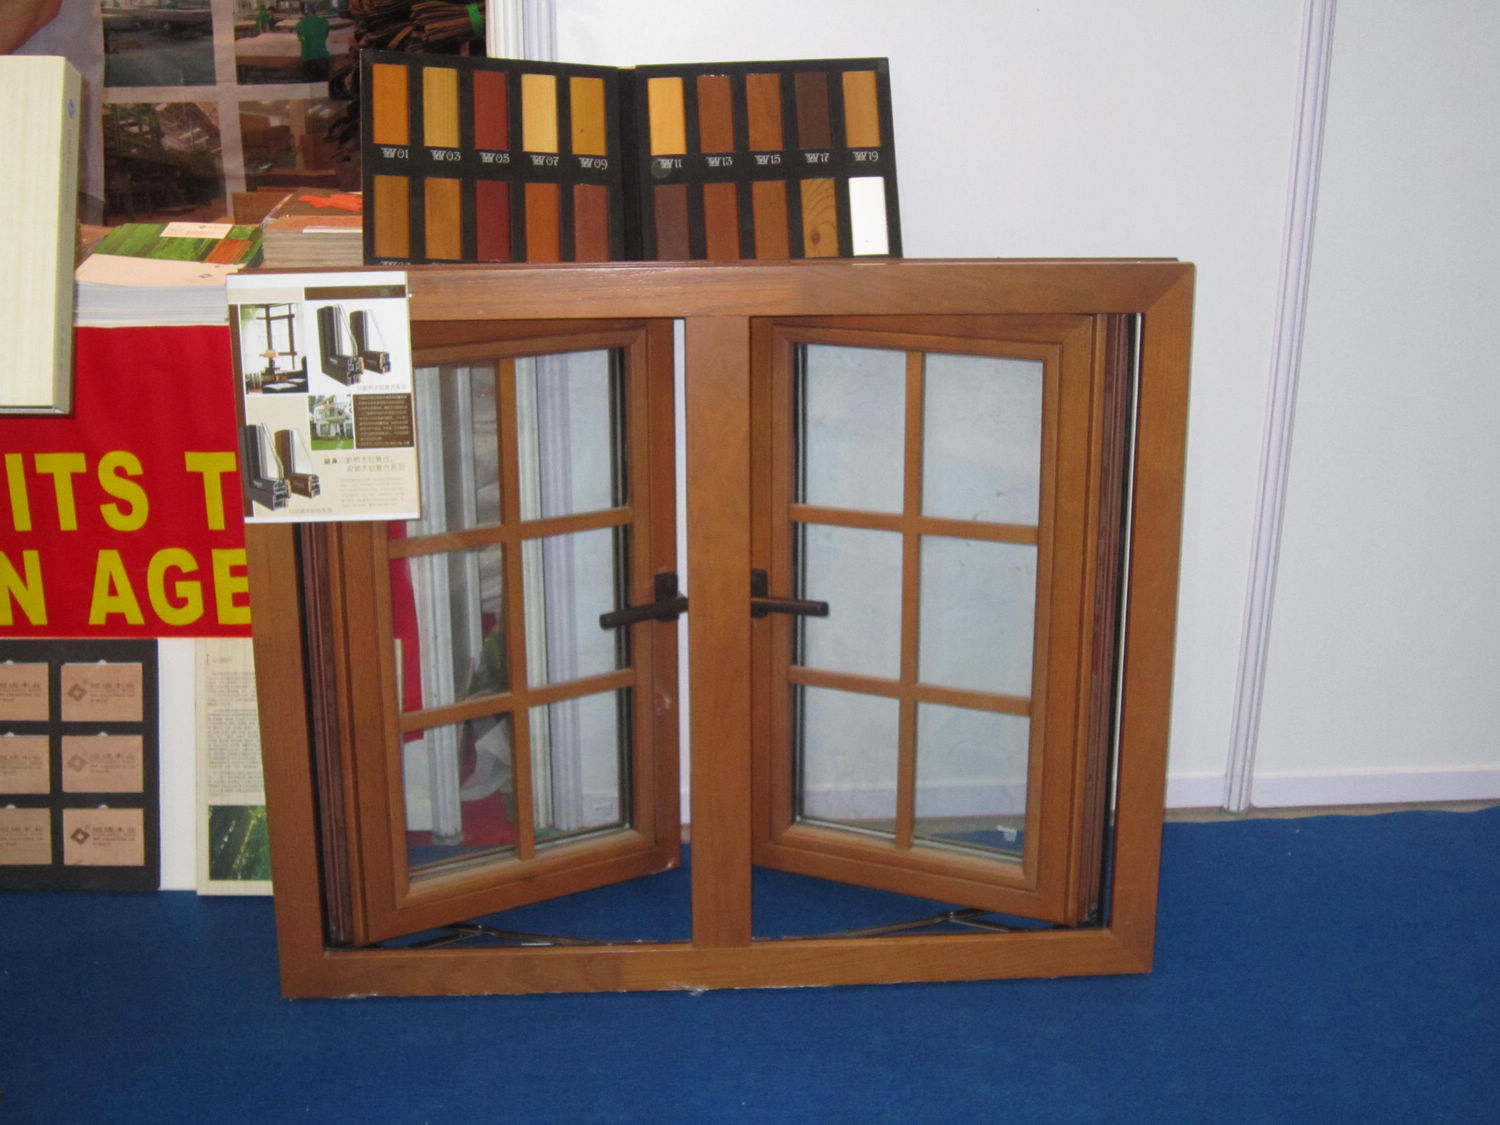 Cost to reface kitchen cabinets for Wood doors and windows